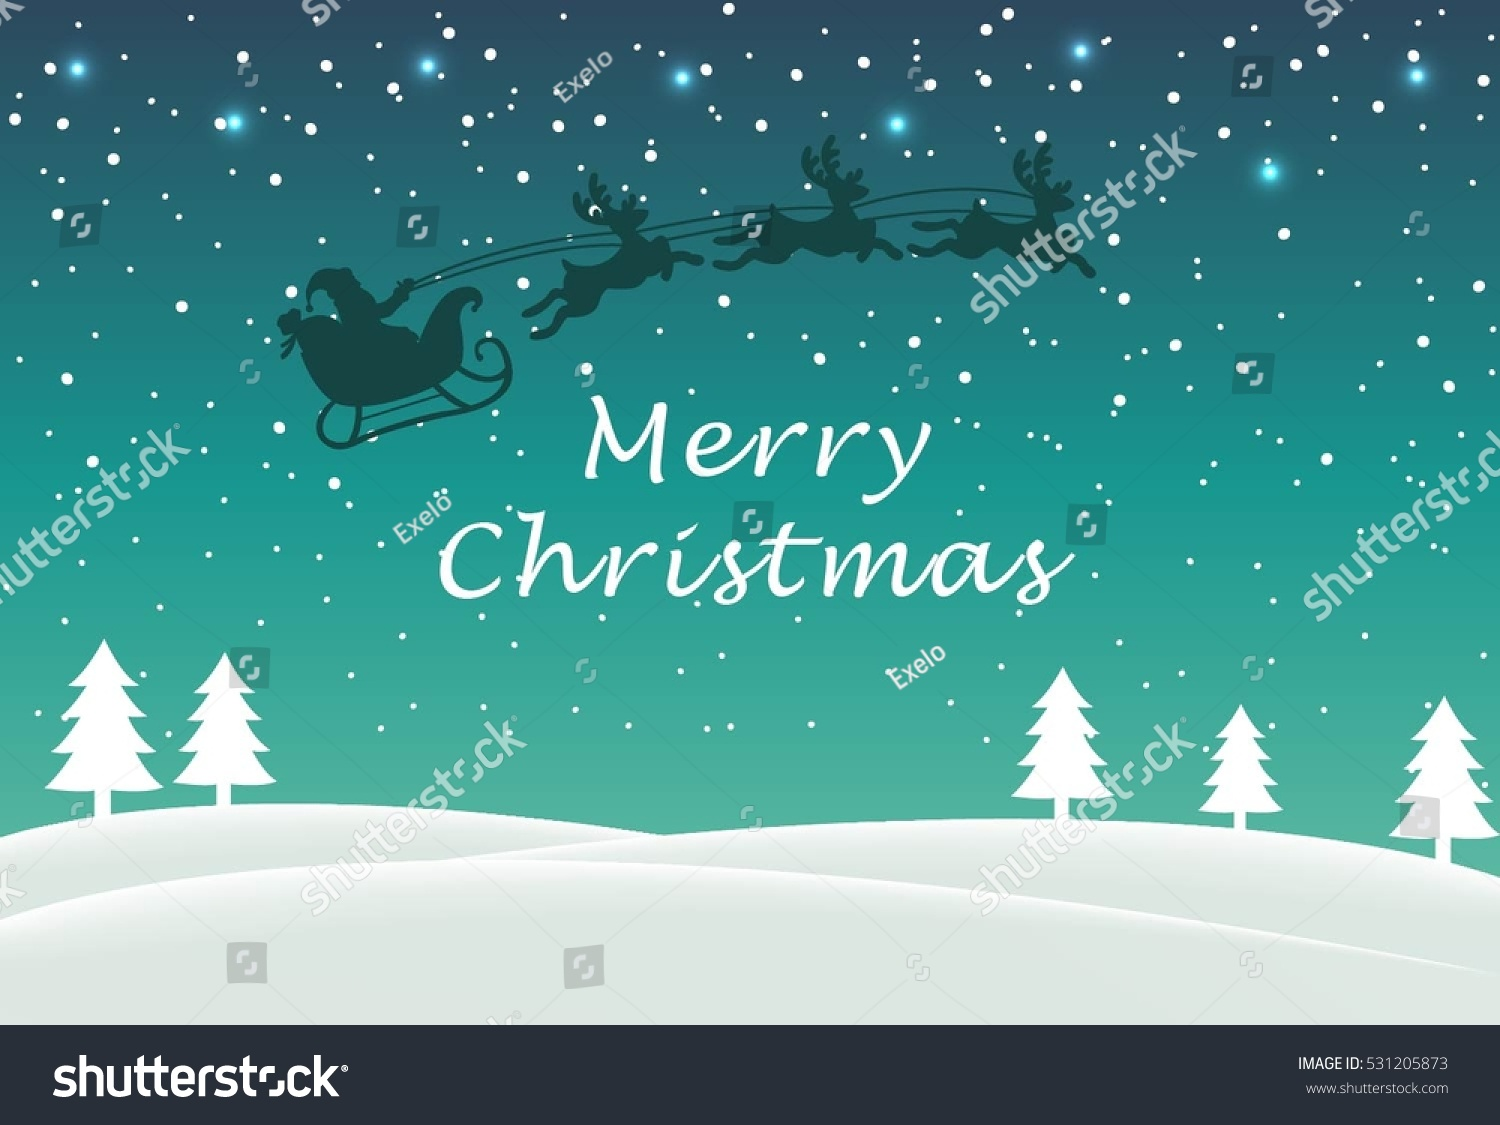 Cool Christmas Greetings Message Background Winter Stock Vector